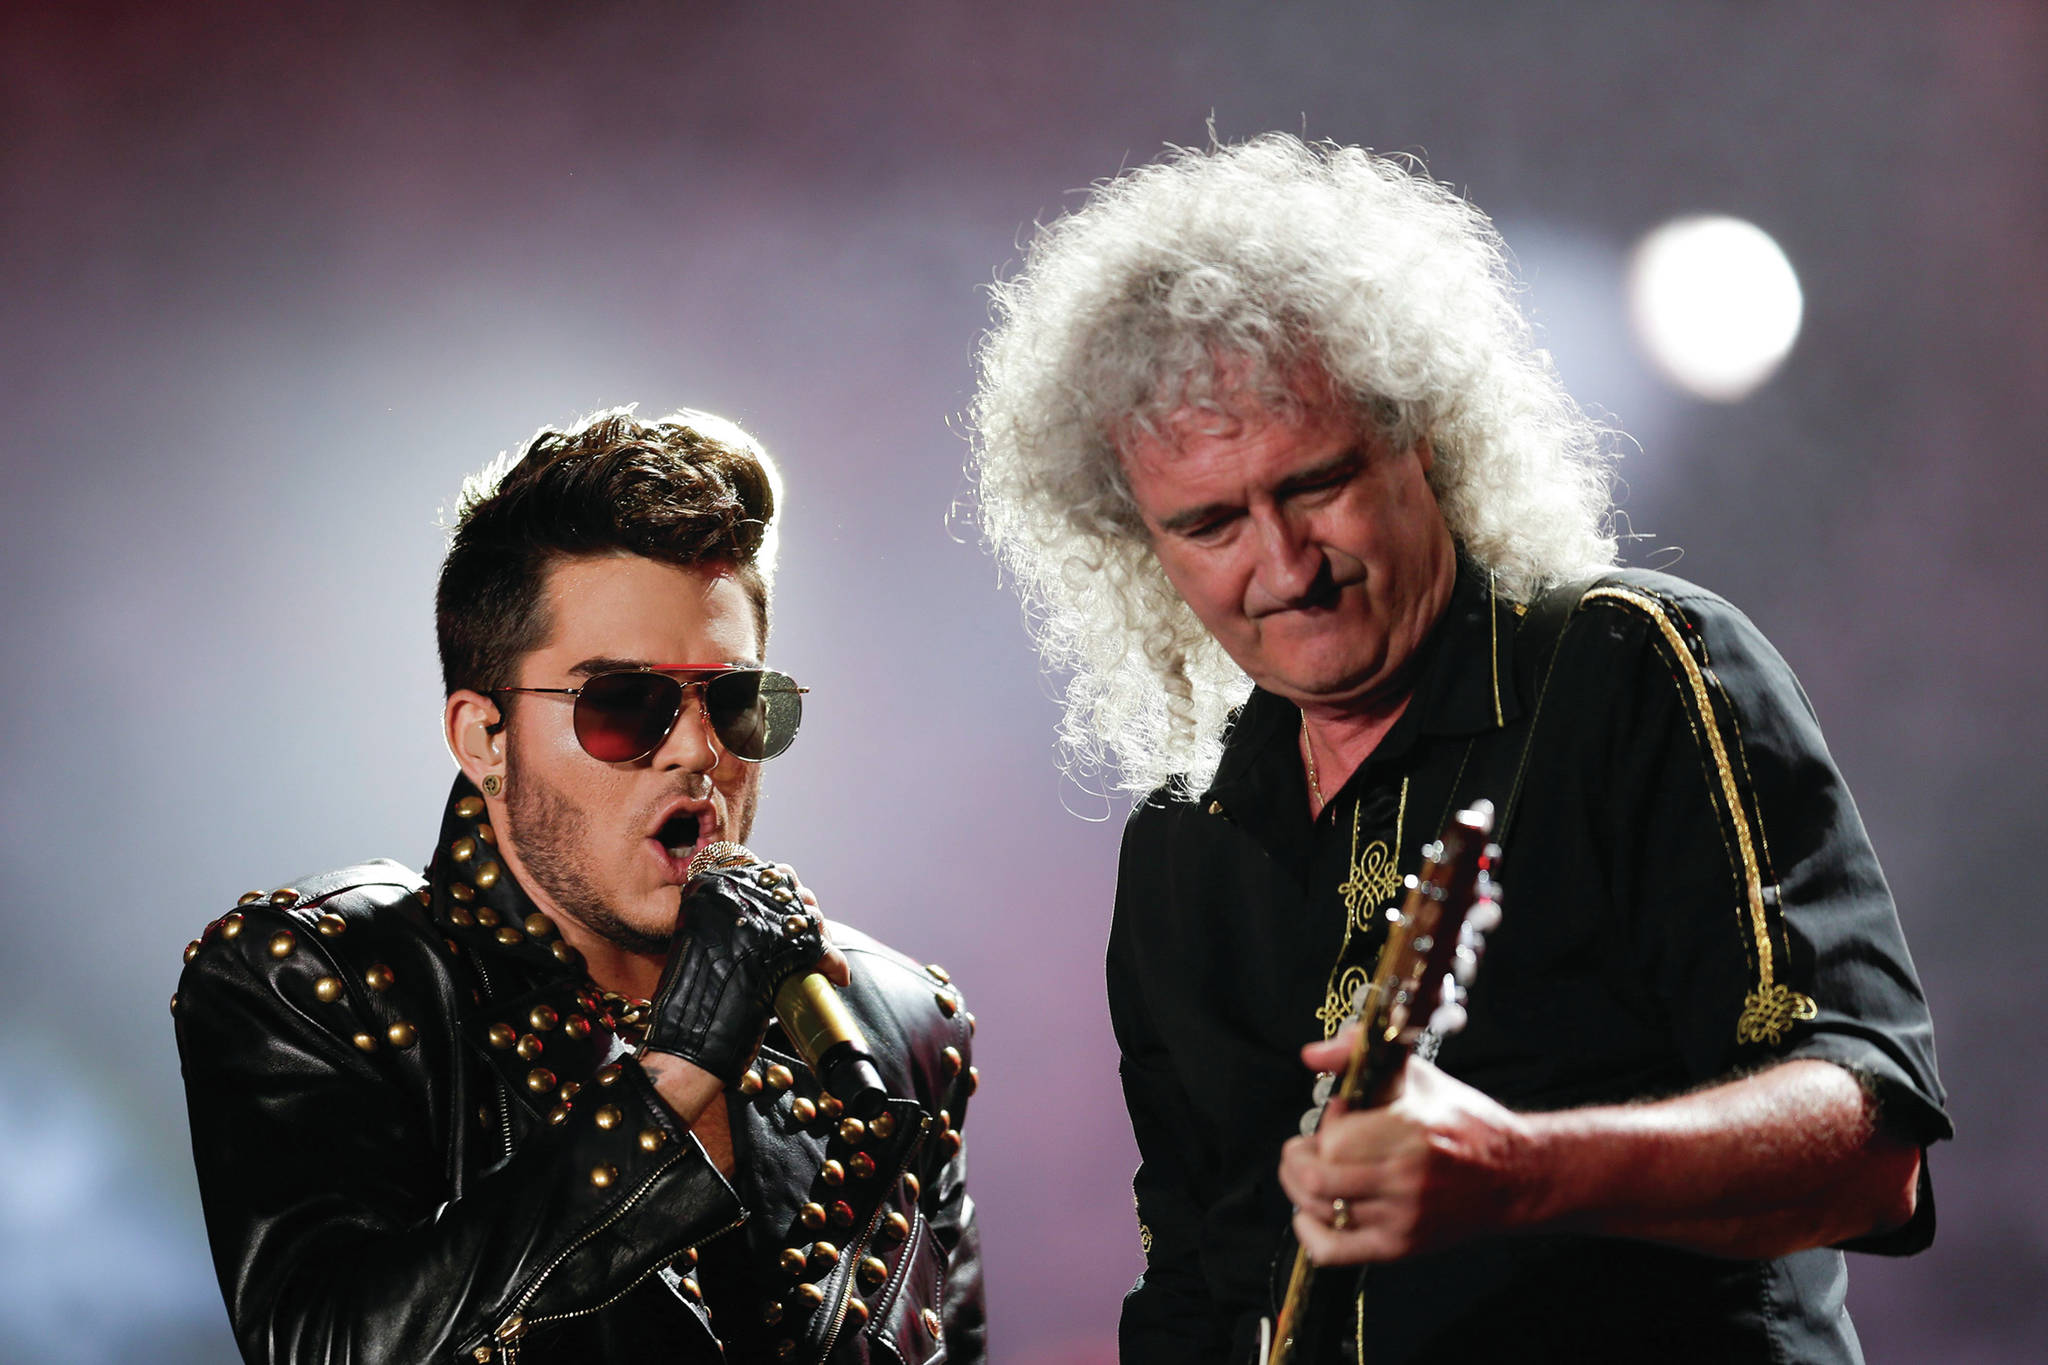 In this Sept. 19, 2015 file photo Adam Lambert, left, and Brian May of Queen perform at the Rock in Rio music festival in Rio de Janeiro, Brazil. May has also earned his PhD. (AP Photo/Felipe Dana, File)